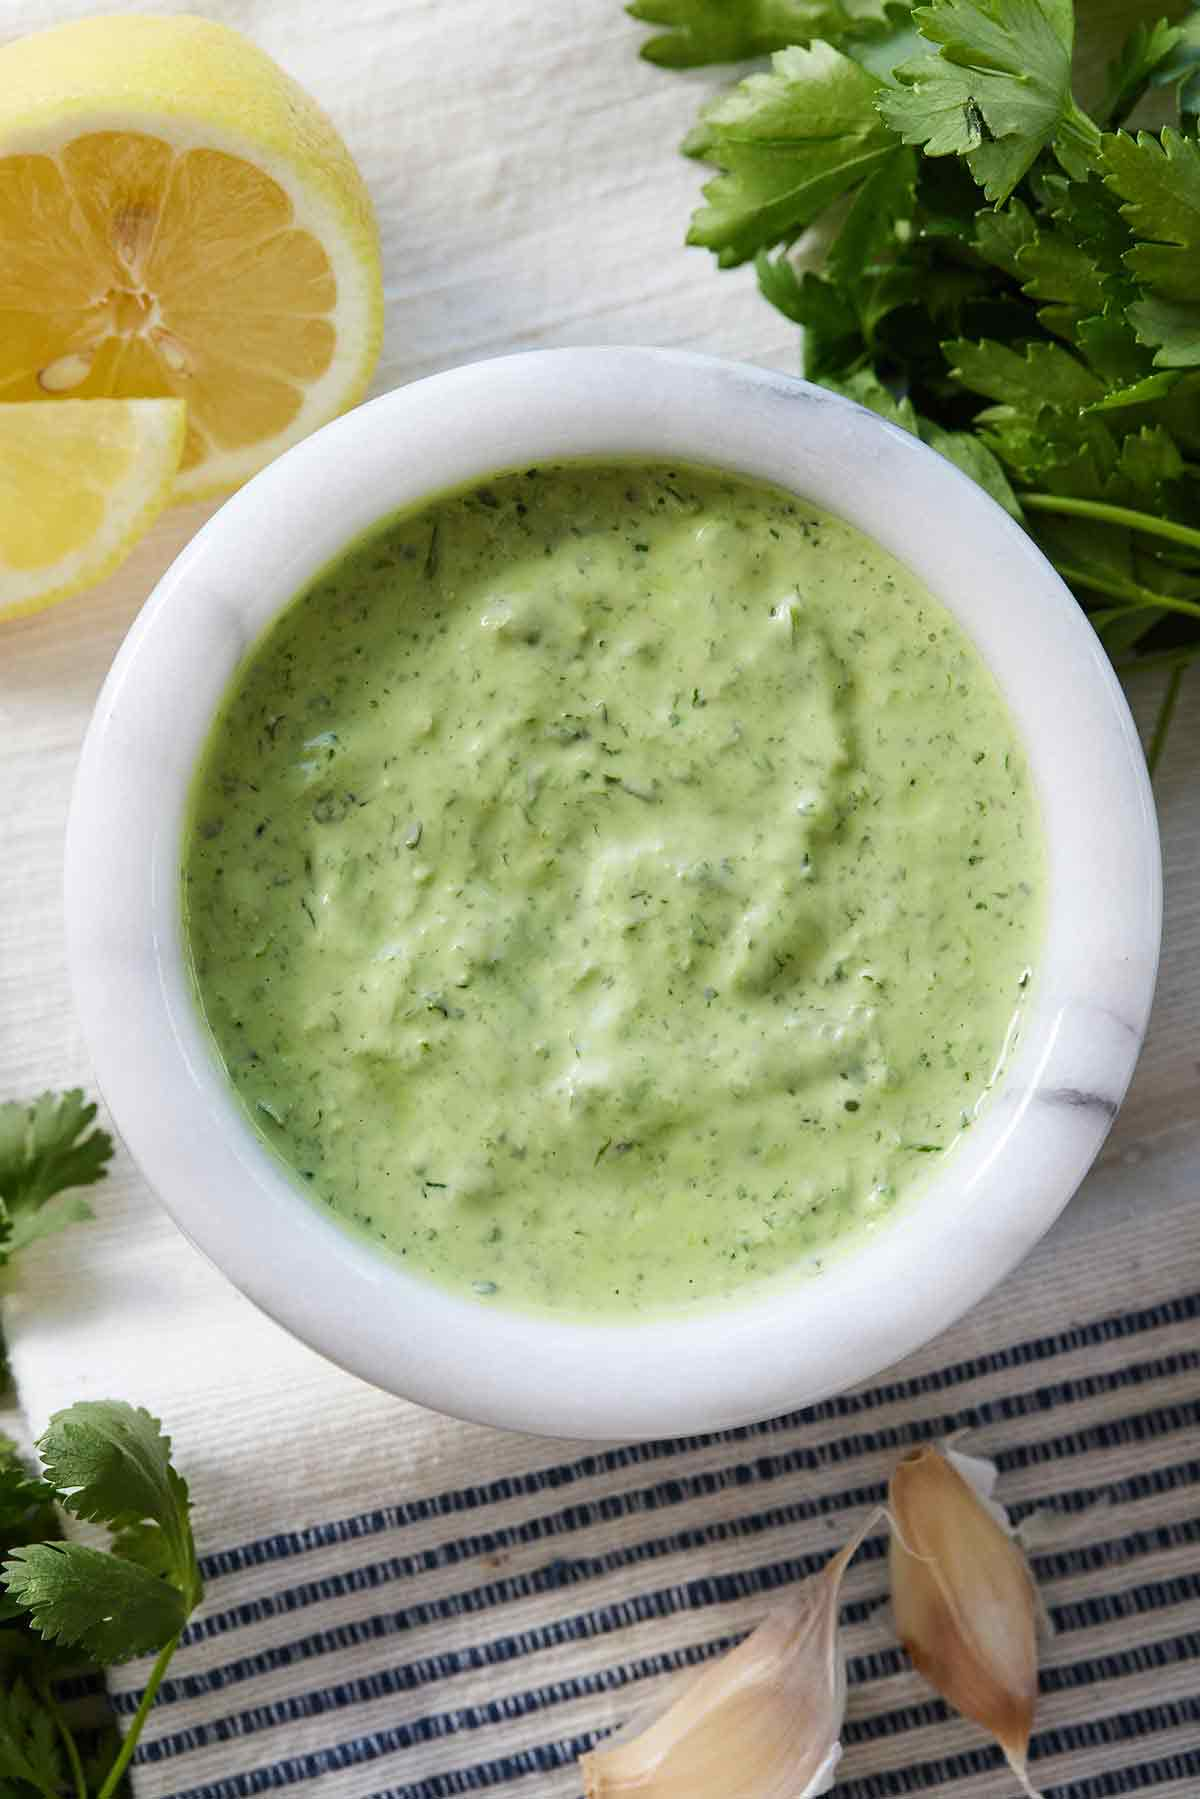 Overhead view of a bowl of green goddess dressing with fresh herbs, garlic cloves, and sliced lemon around it.